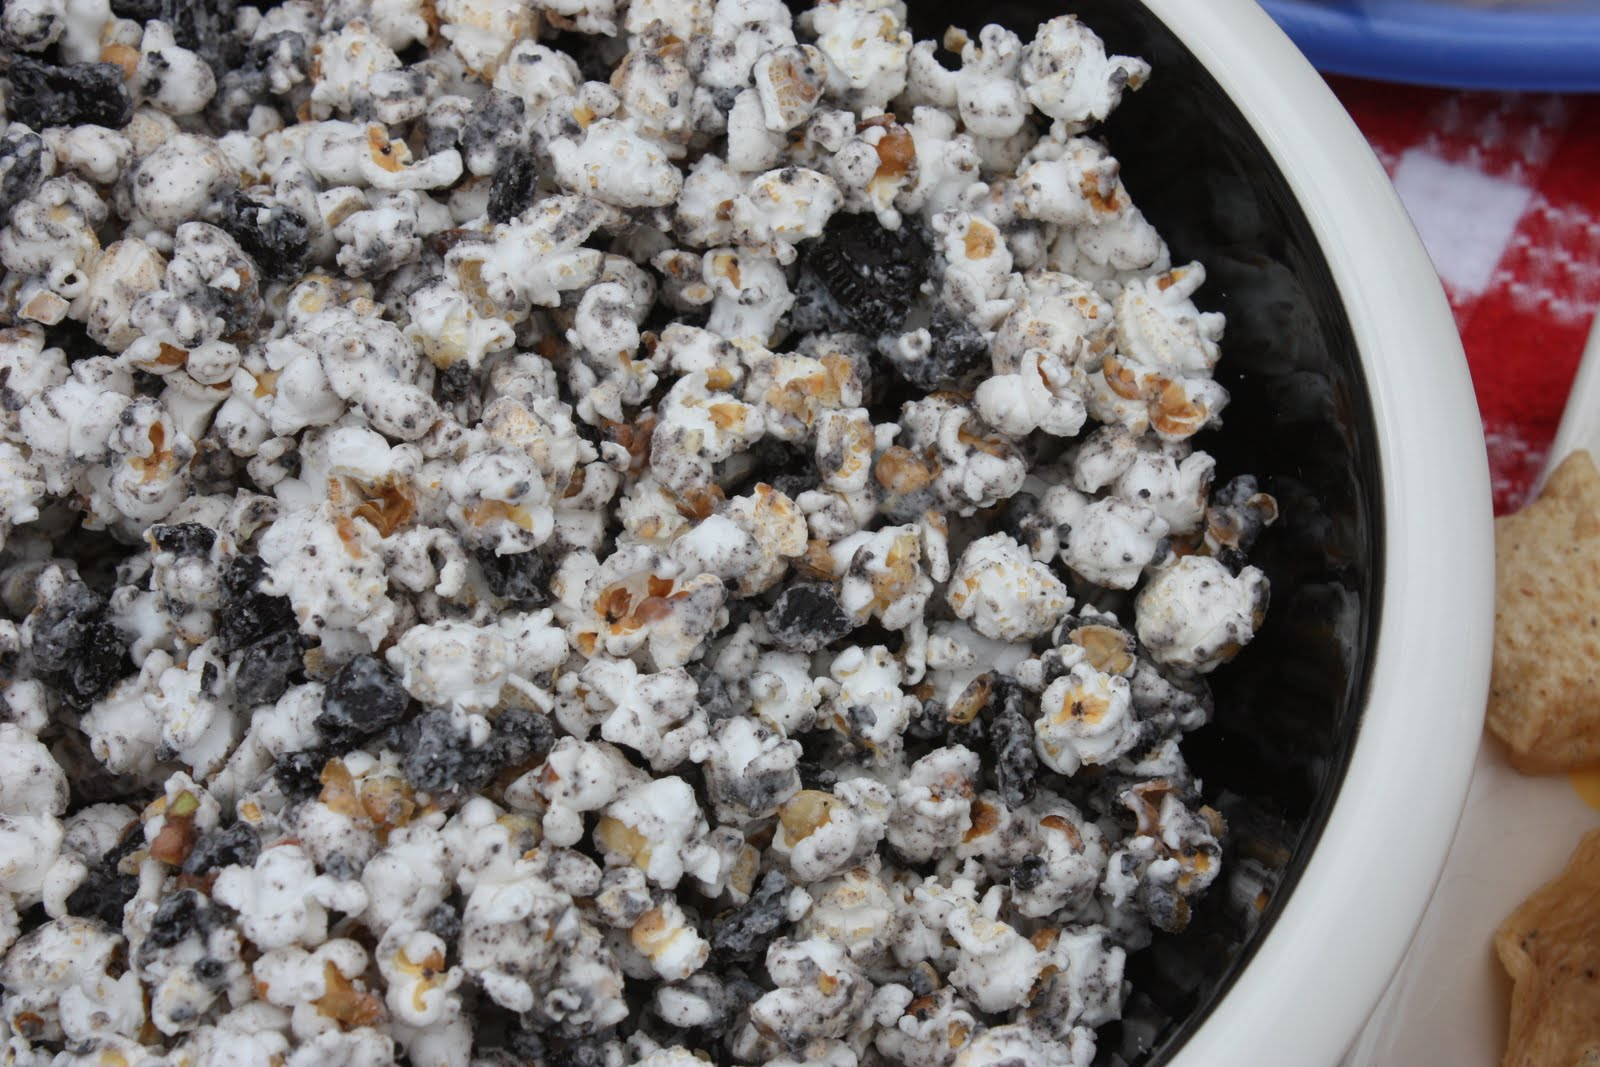 Clawson Live: Rachel's Cookies and Cream Popcorn